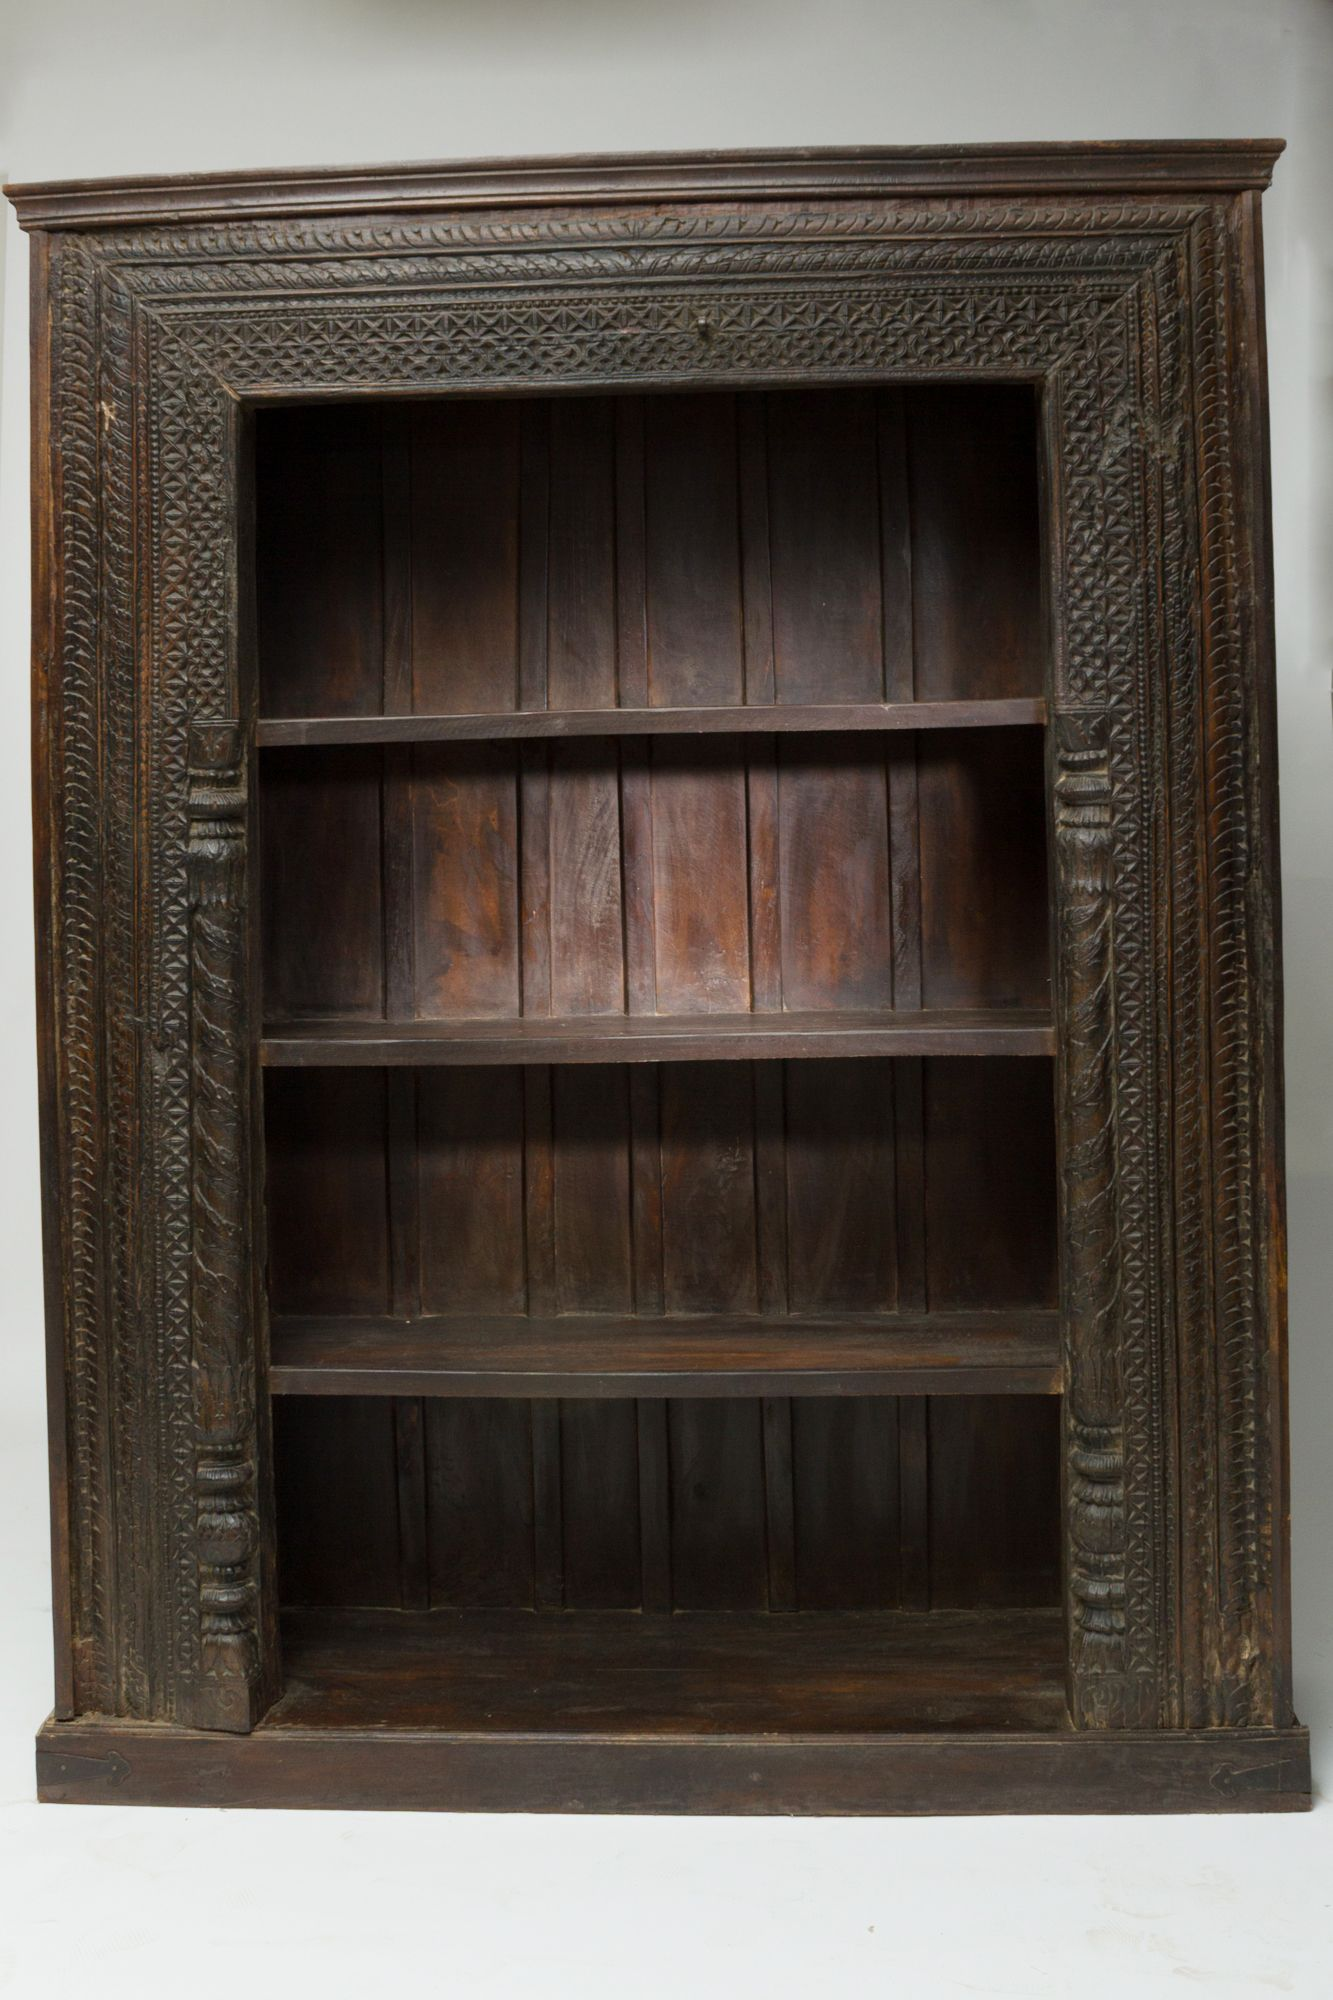 Jodhpurtrends.com A Reclaimed Indian Hand Carved Doorway Is Rebuilt Into A  6 X 9